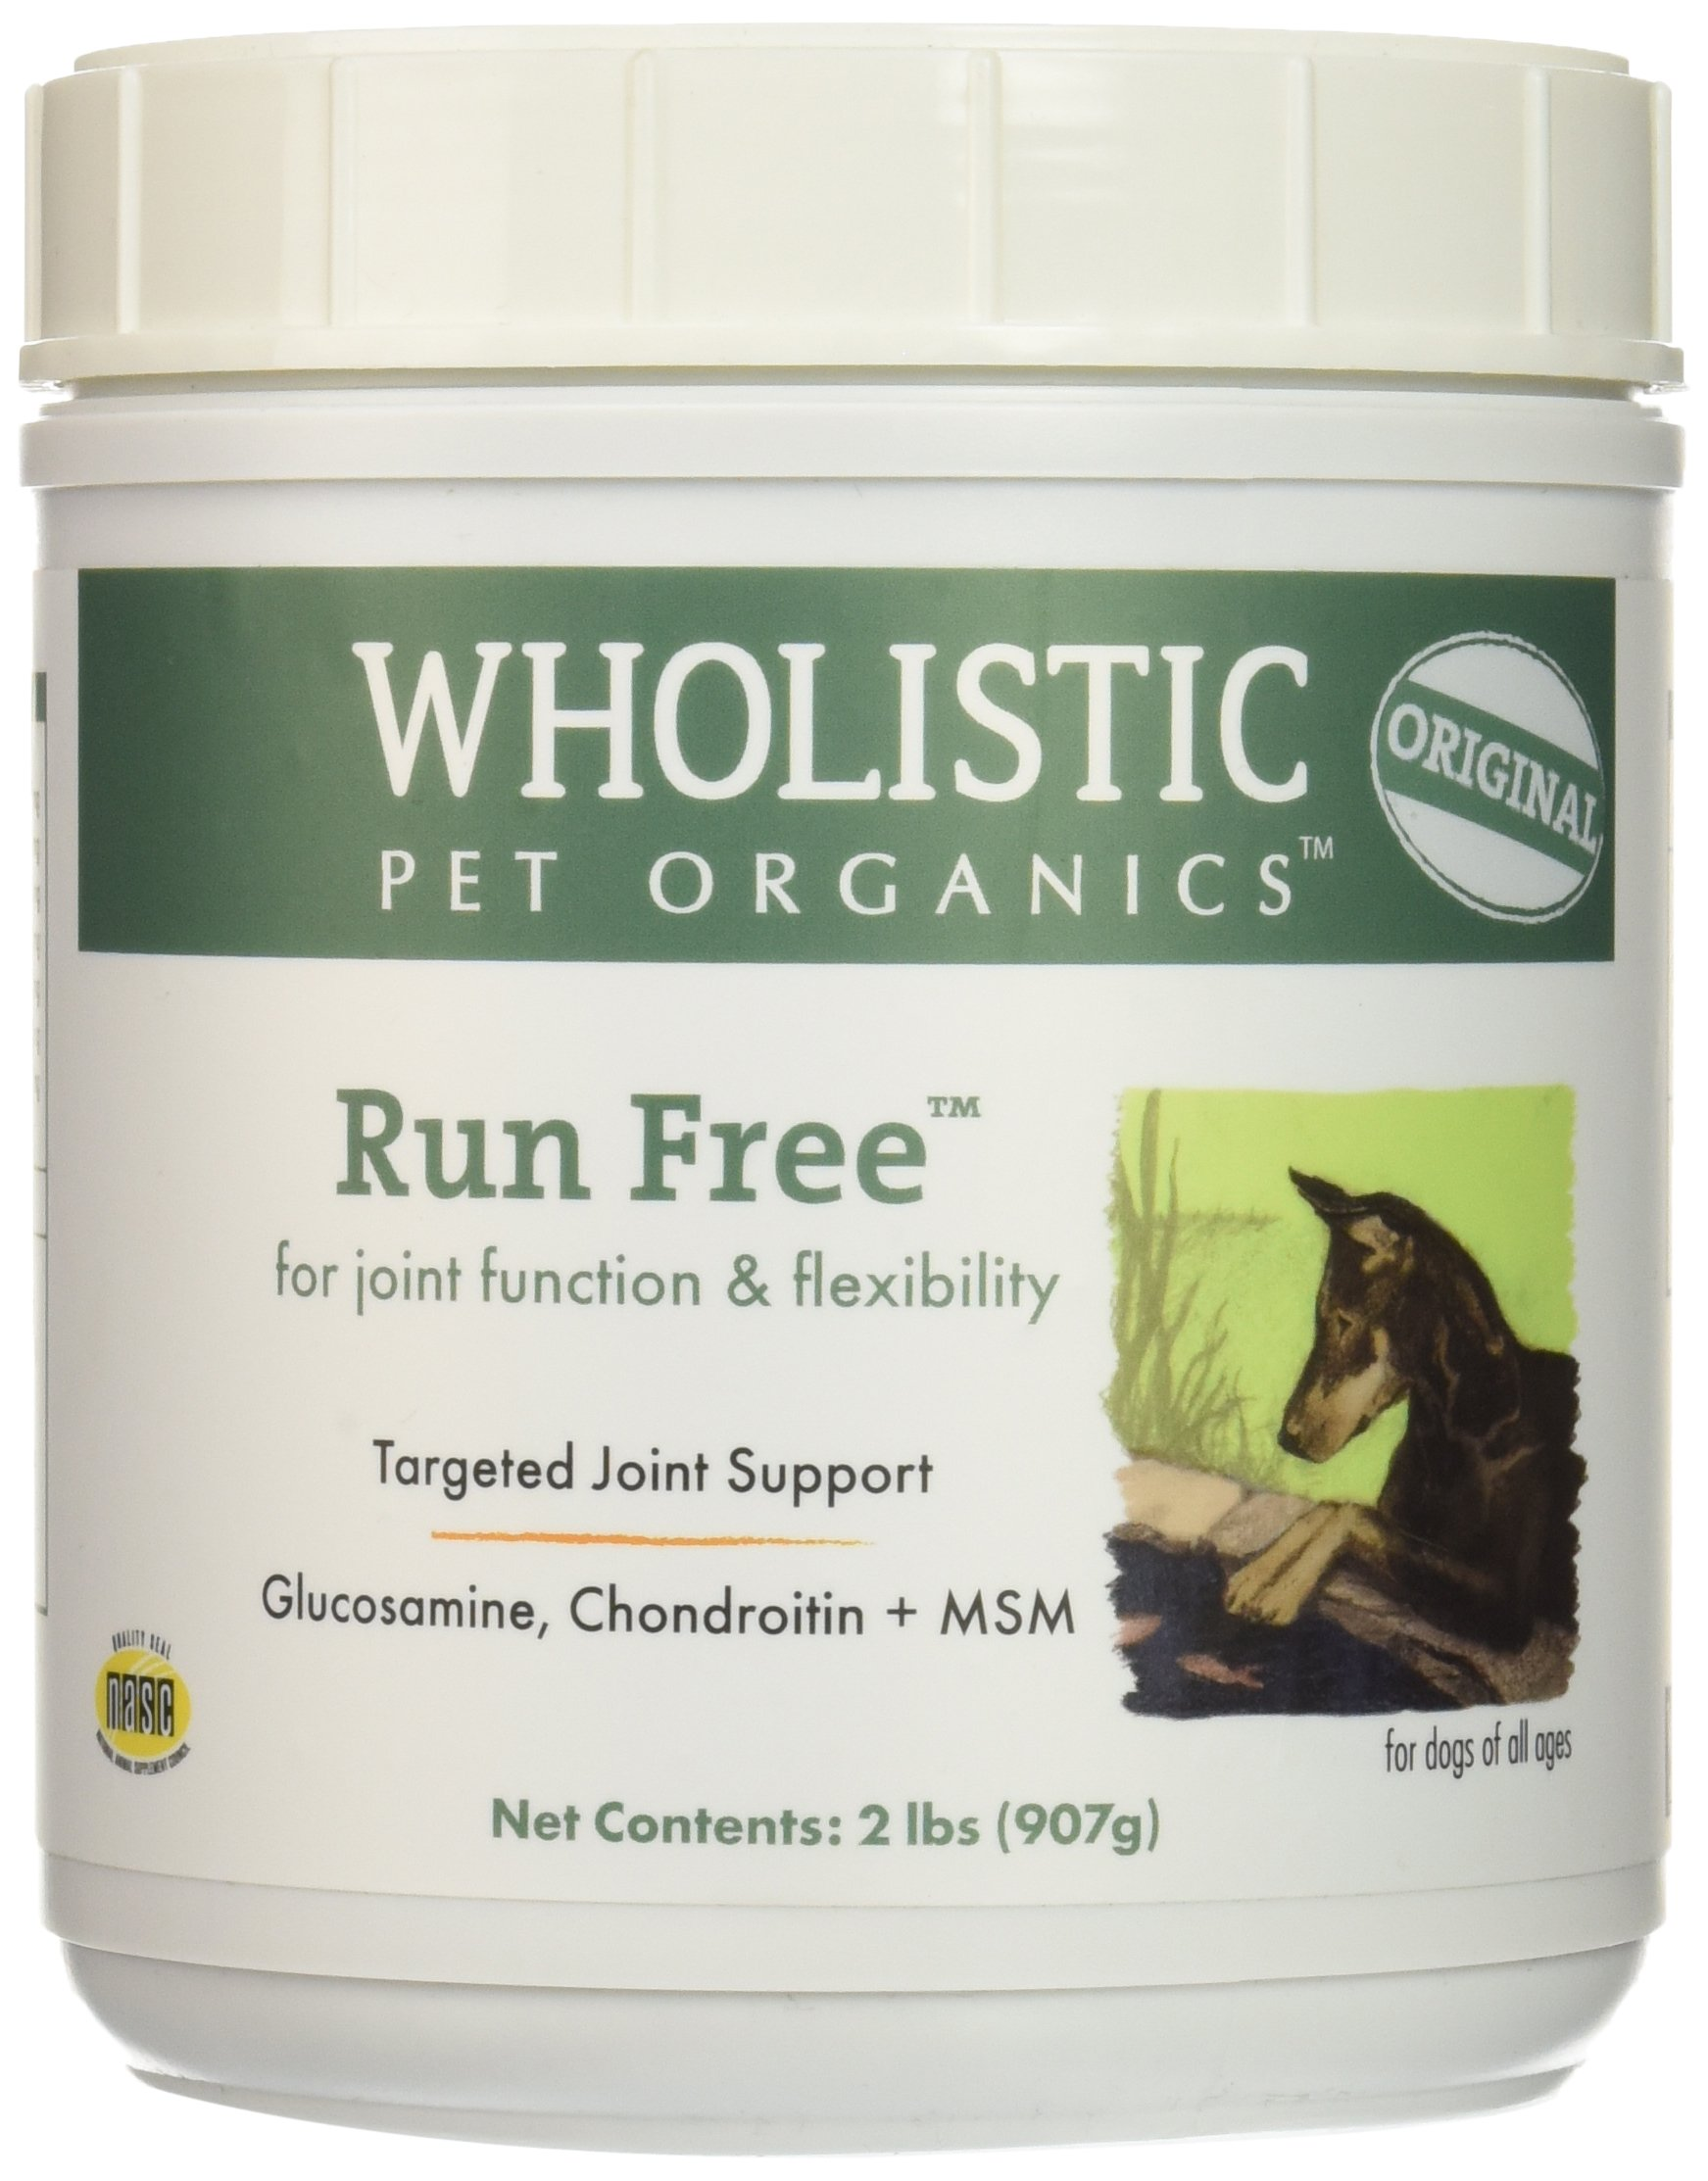 Wholistic Pet Organics Run Free Supplement, 2 lb